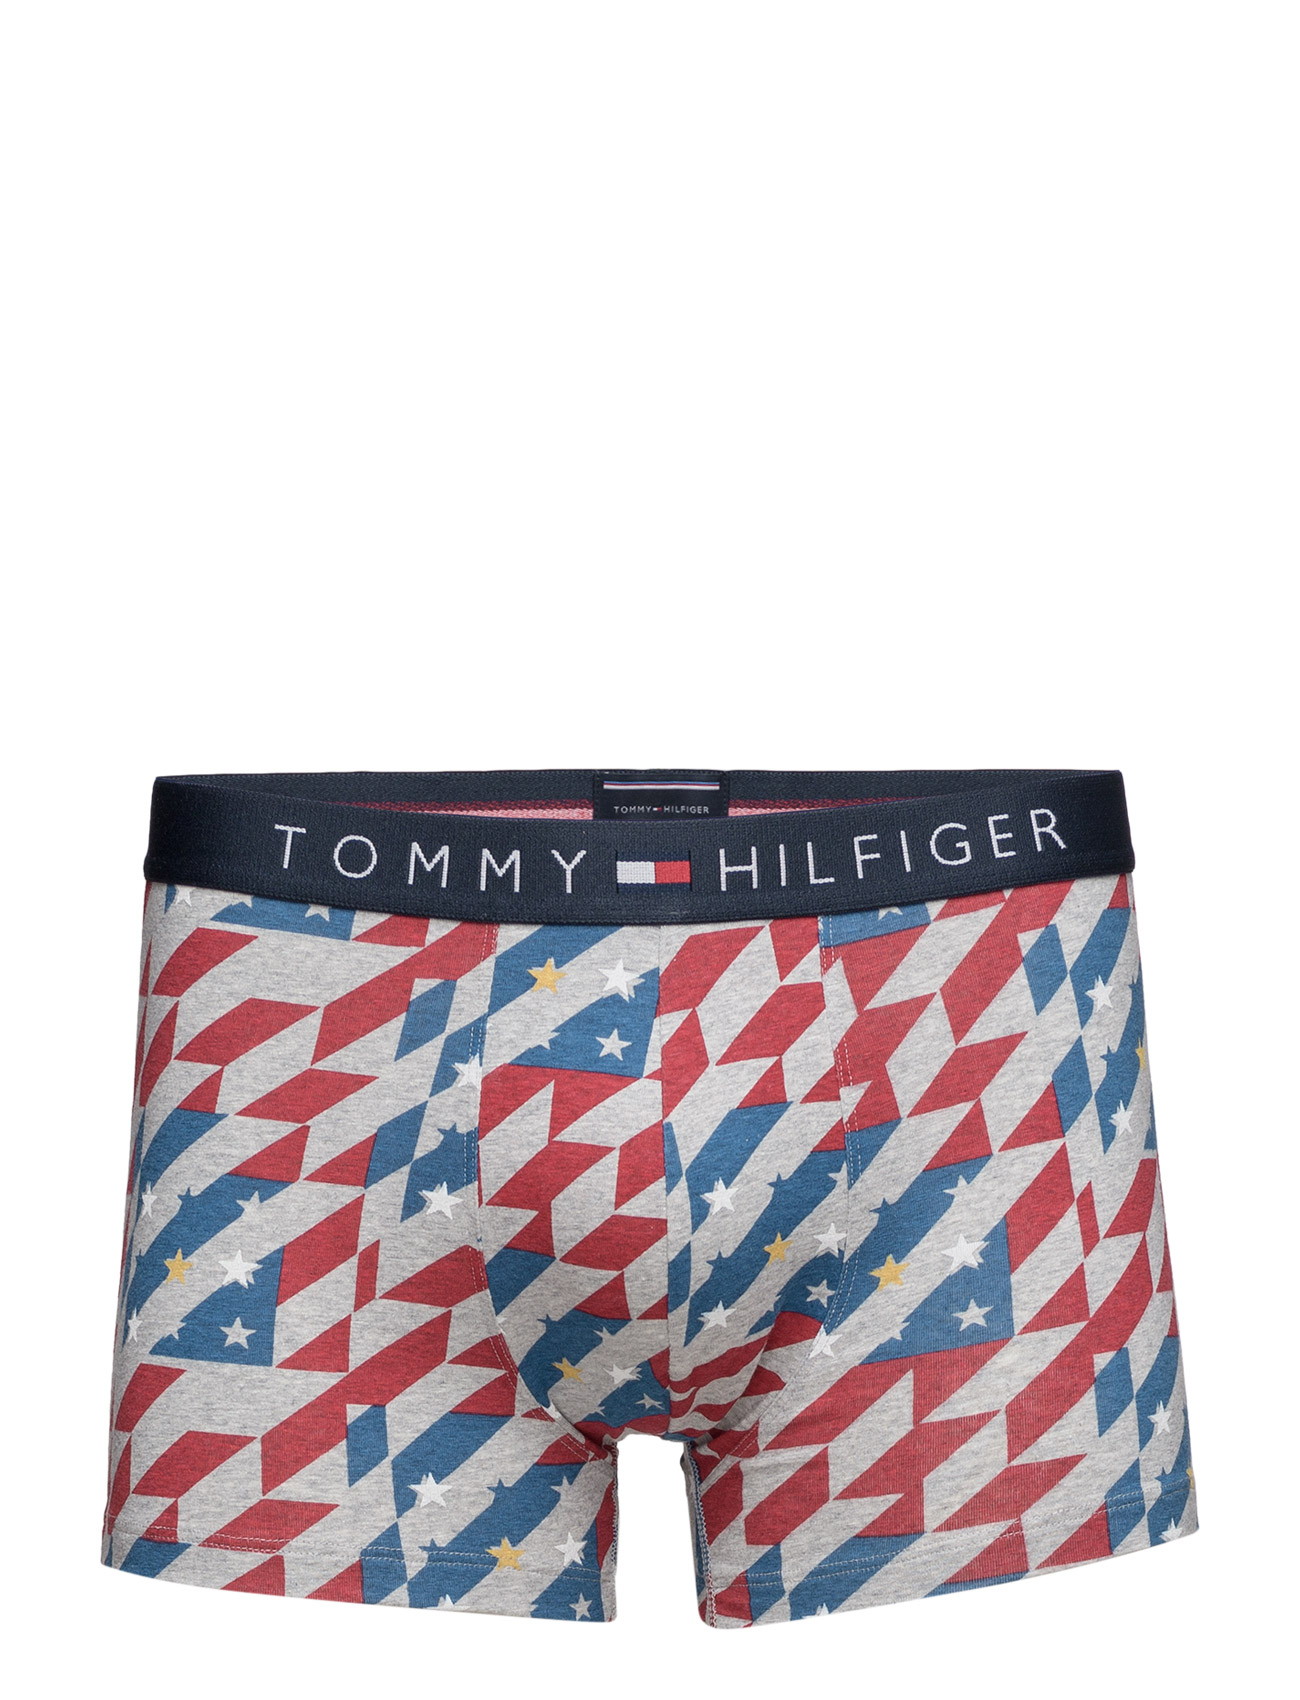 Icon Trunk Americana Tommy Hilfiger Boxershorts